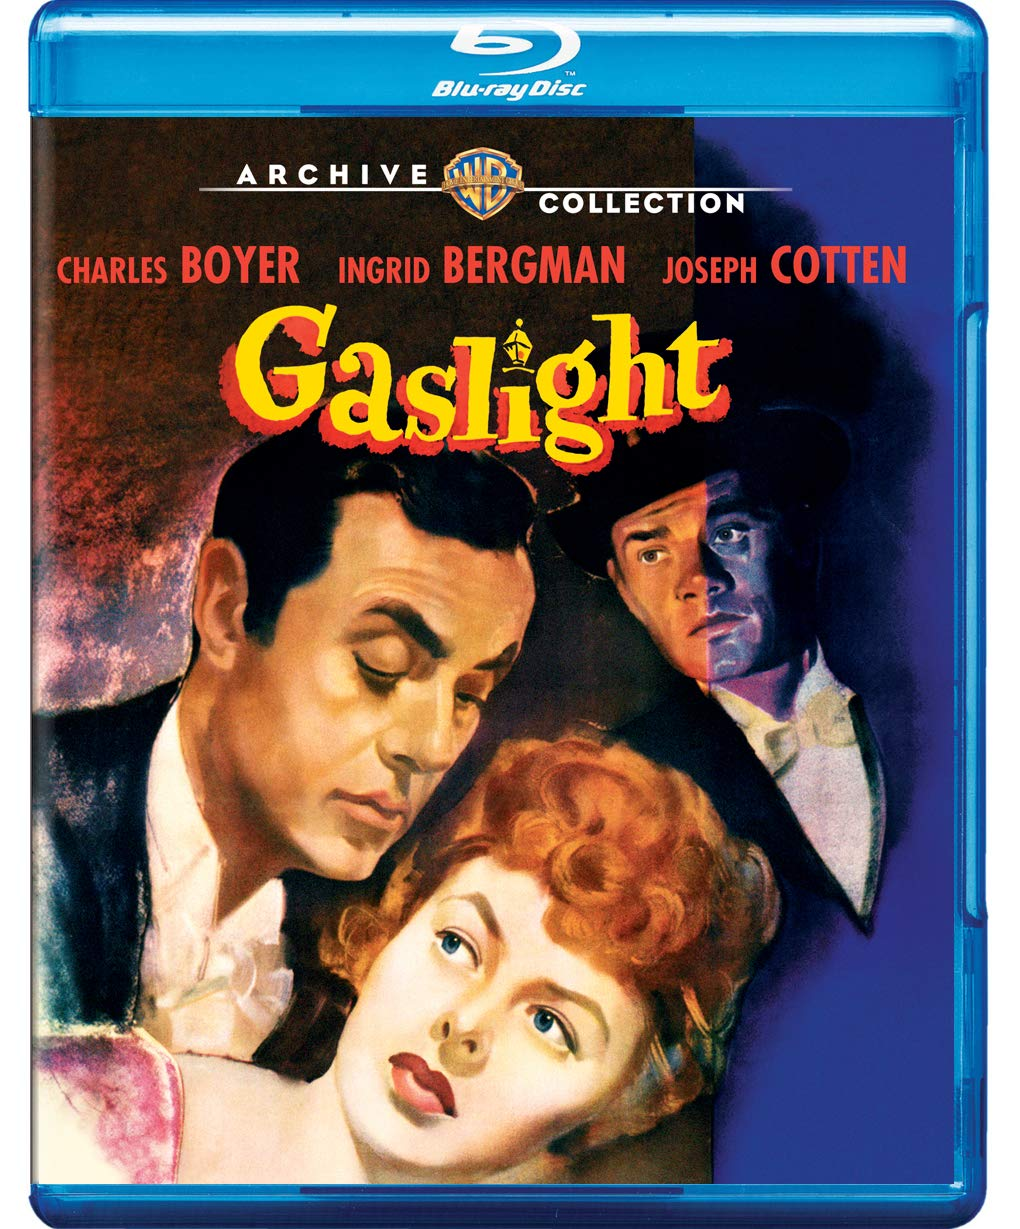 Gaslight Blu-ray - Buy at Amazon